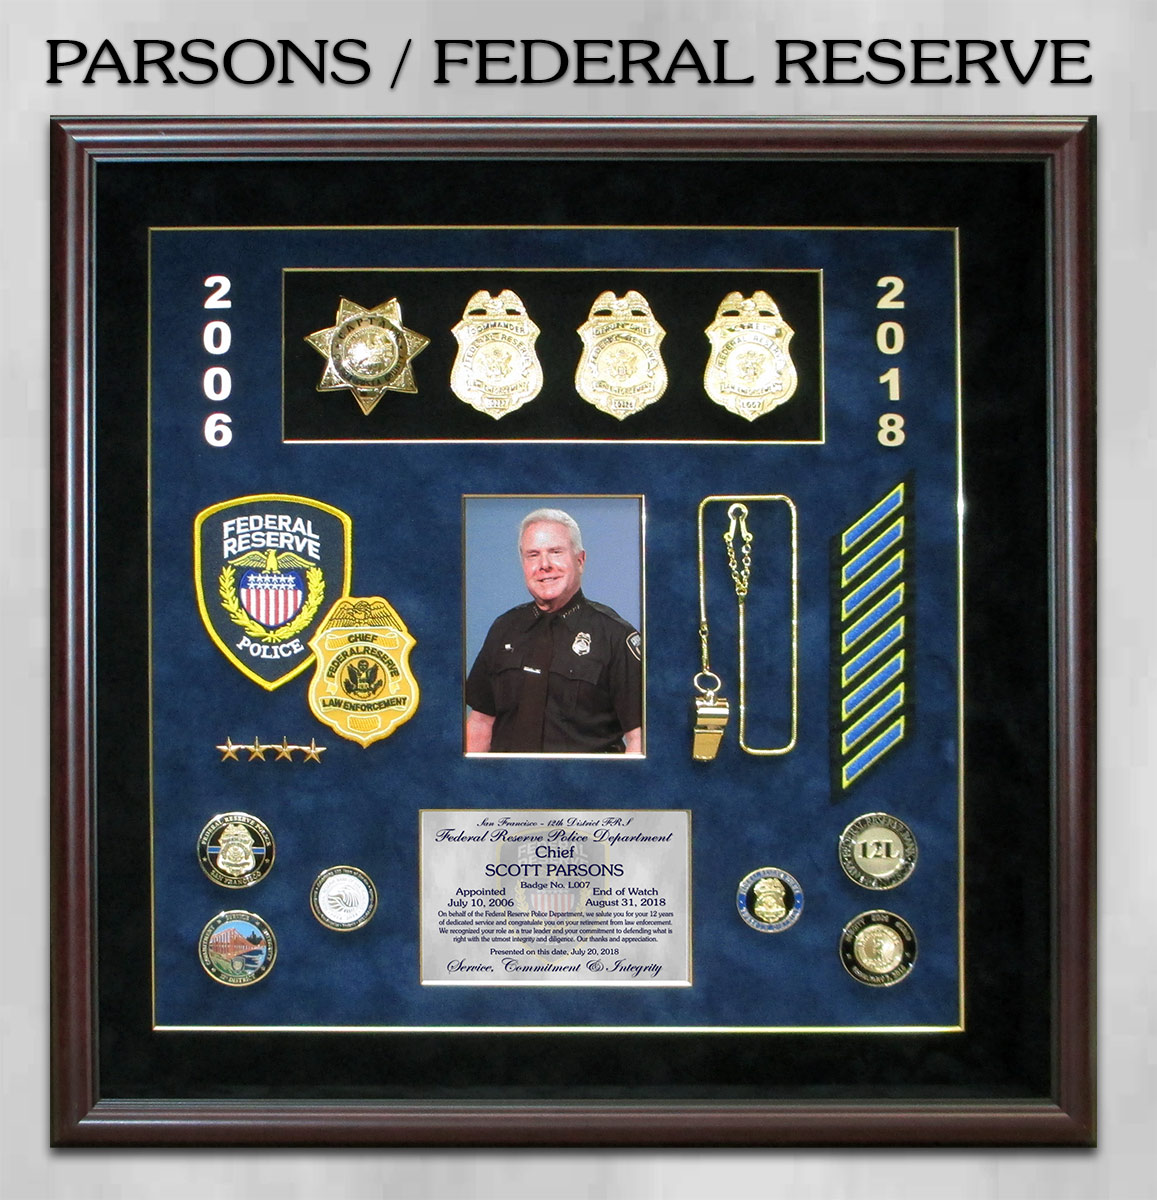 Parsons - Federal Reserve